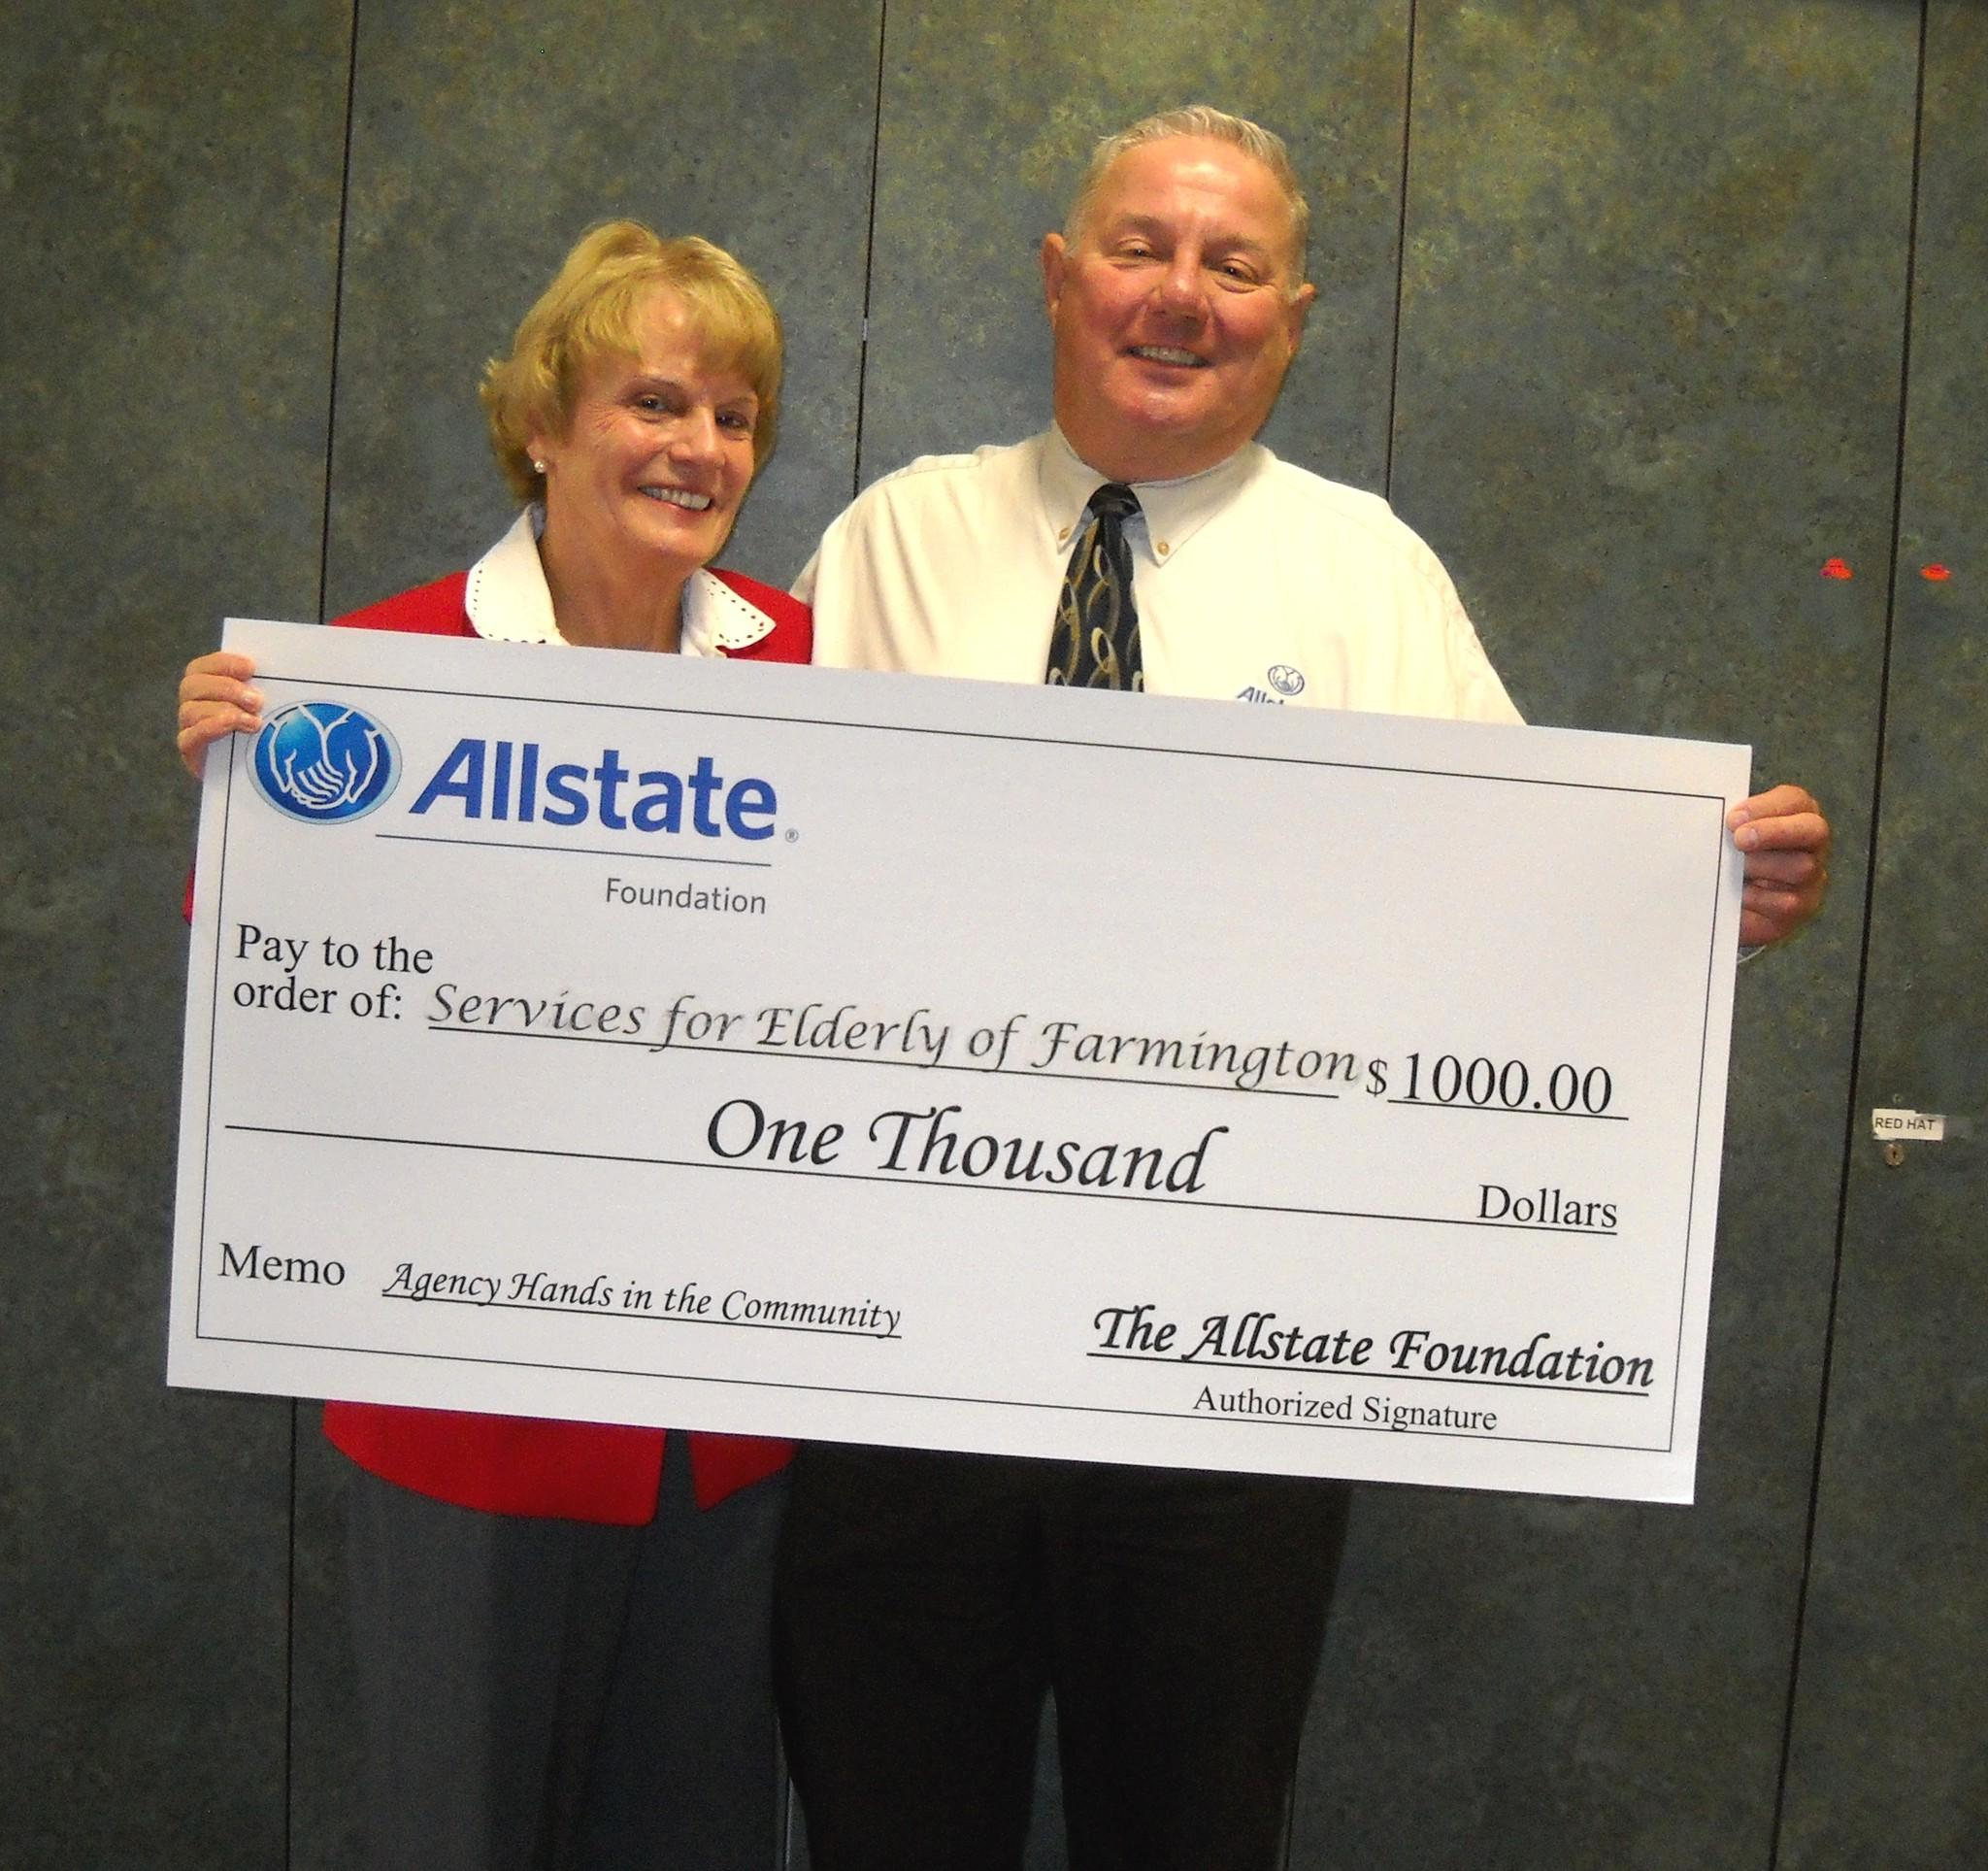 Allstate Agent and Meals on Wheels volunteer Ray Zailskas presents Nancy Walker, executive director of Services for the Elderly of Farmington, with a $1,000 check from The Allstate Foundation.